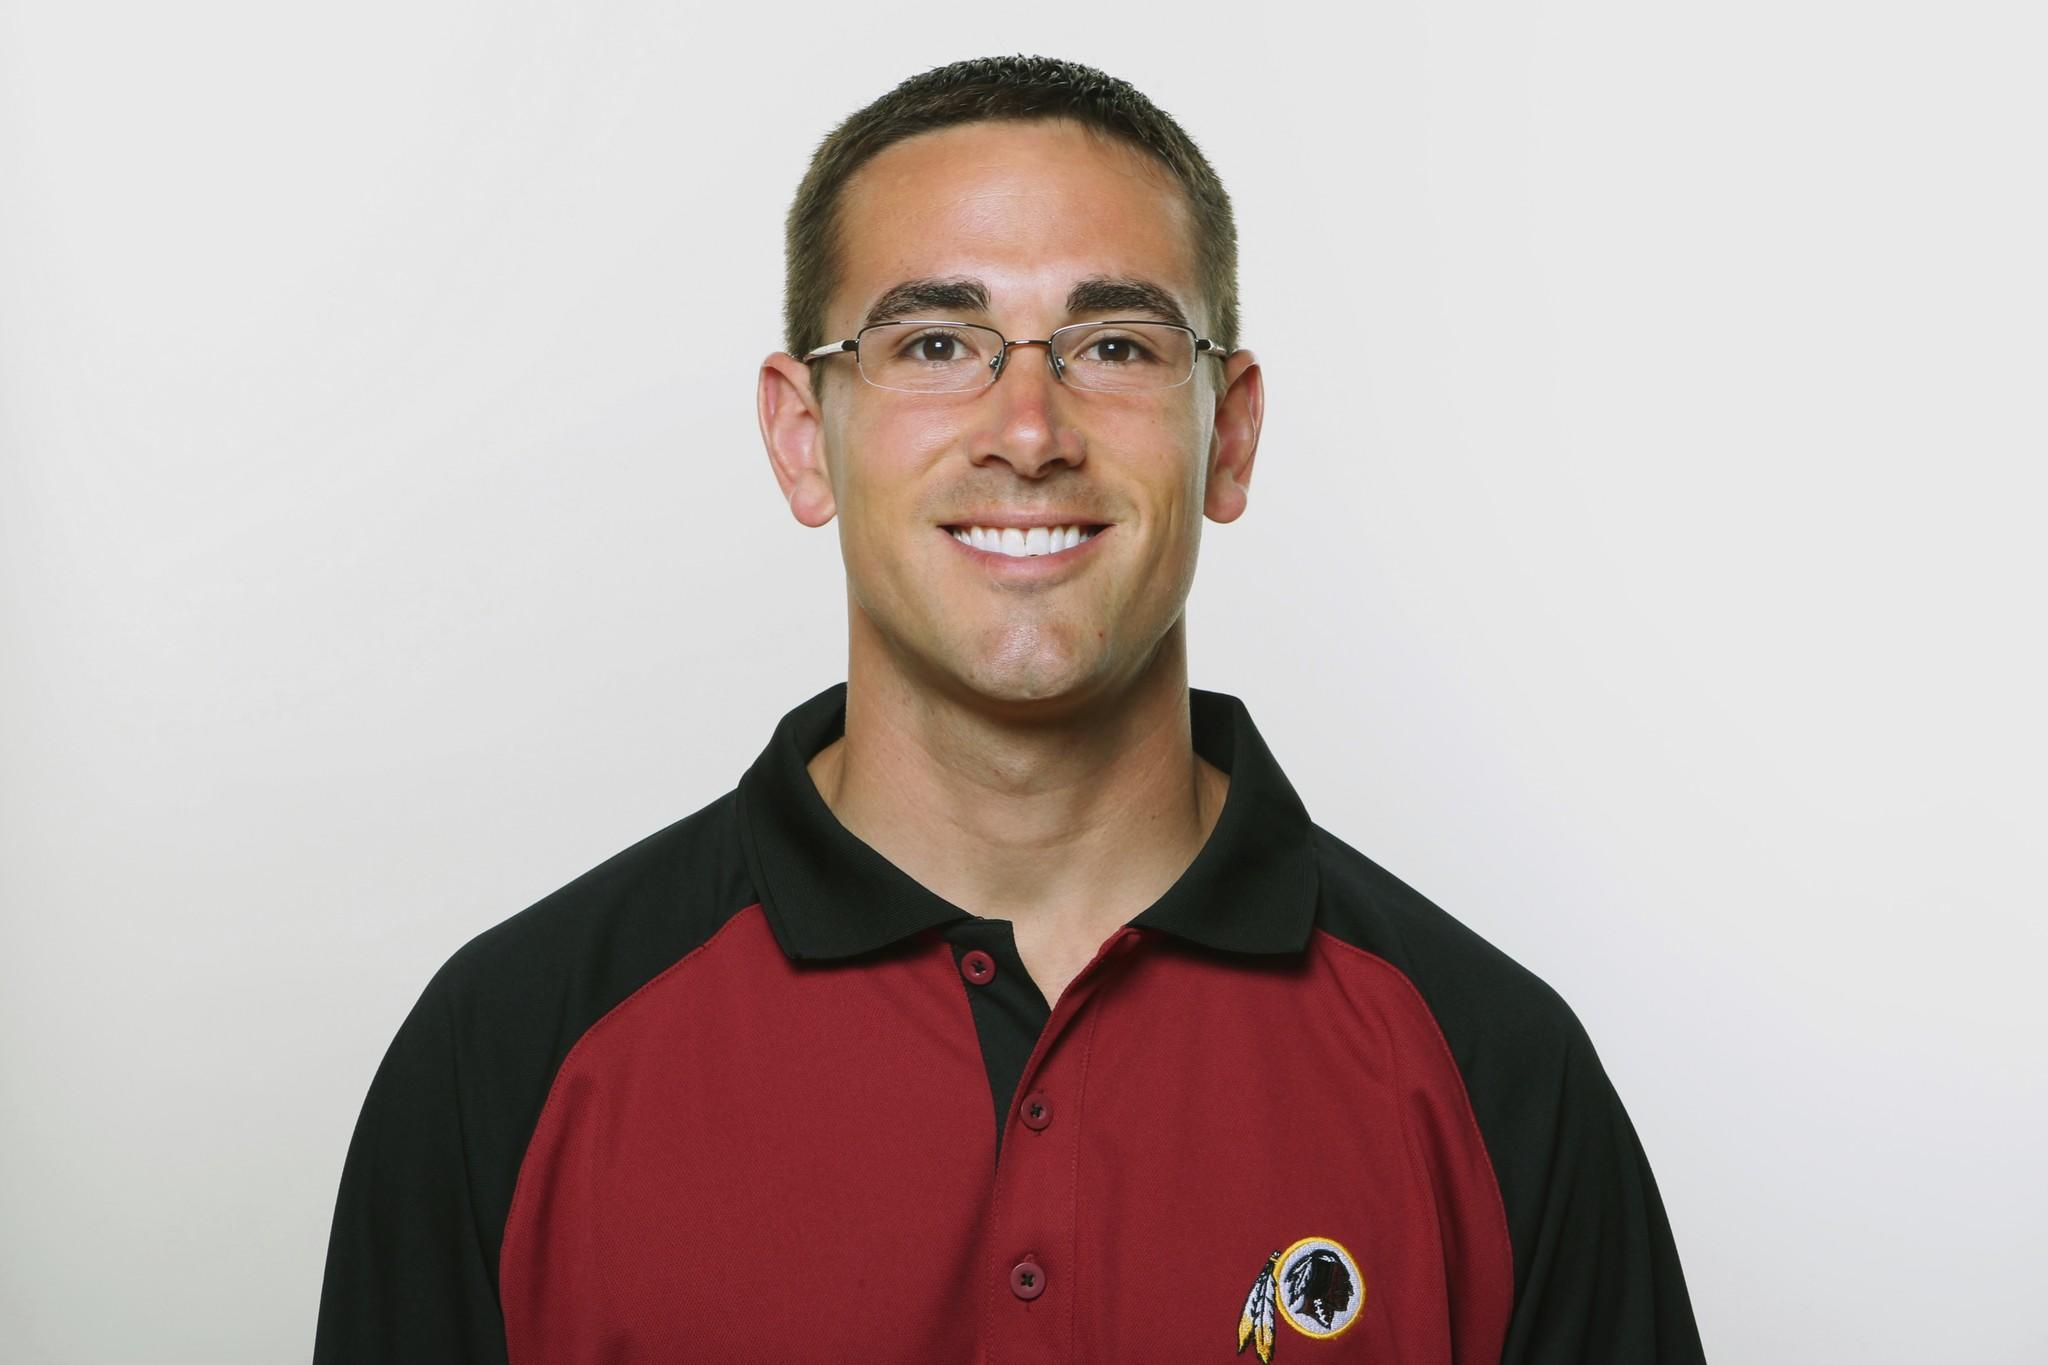 A 2009 photo of Matt LaFleur when he was with the Redskins.